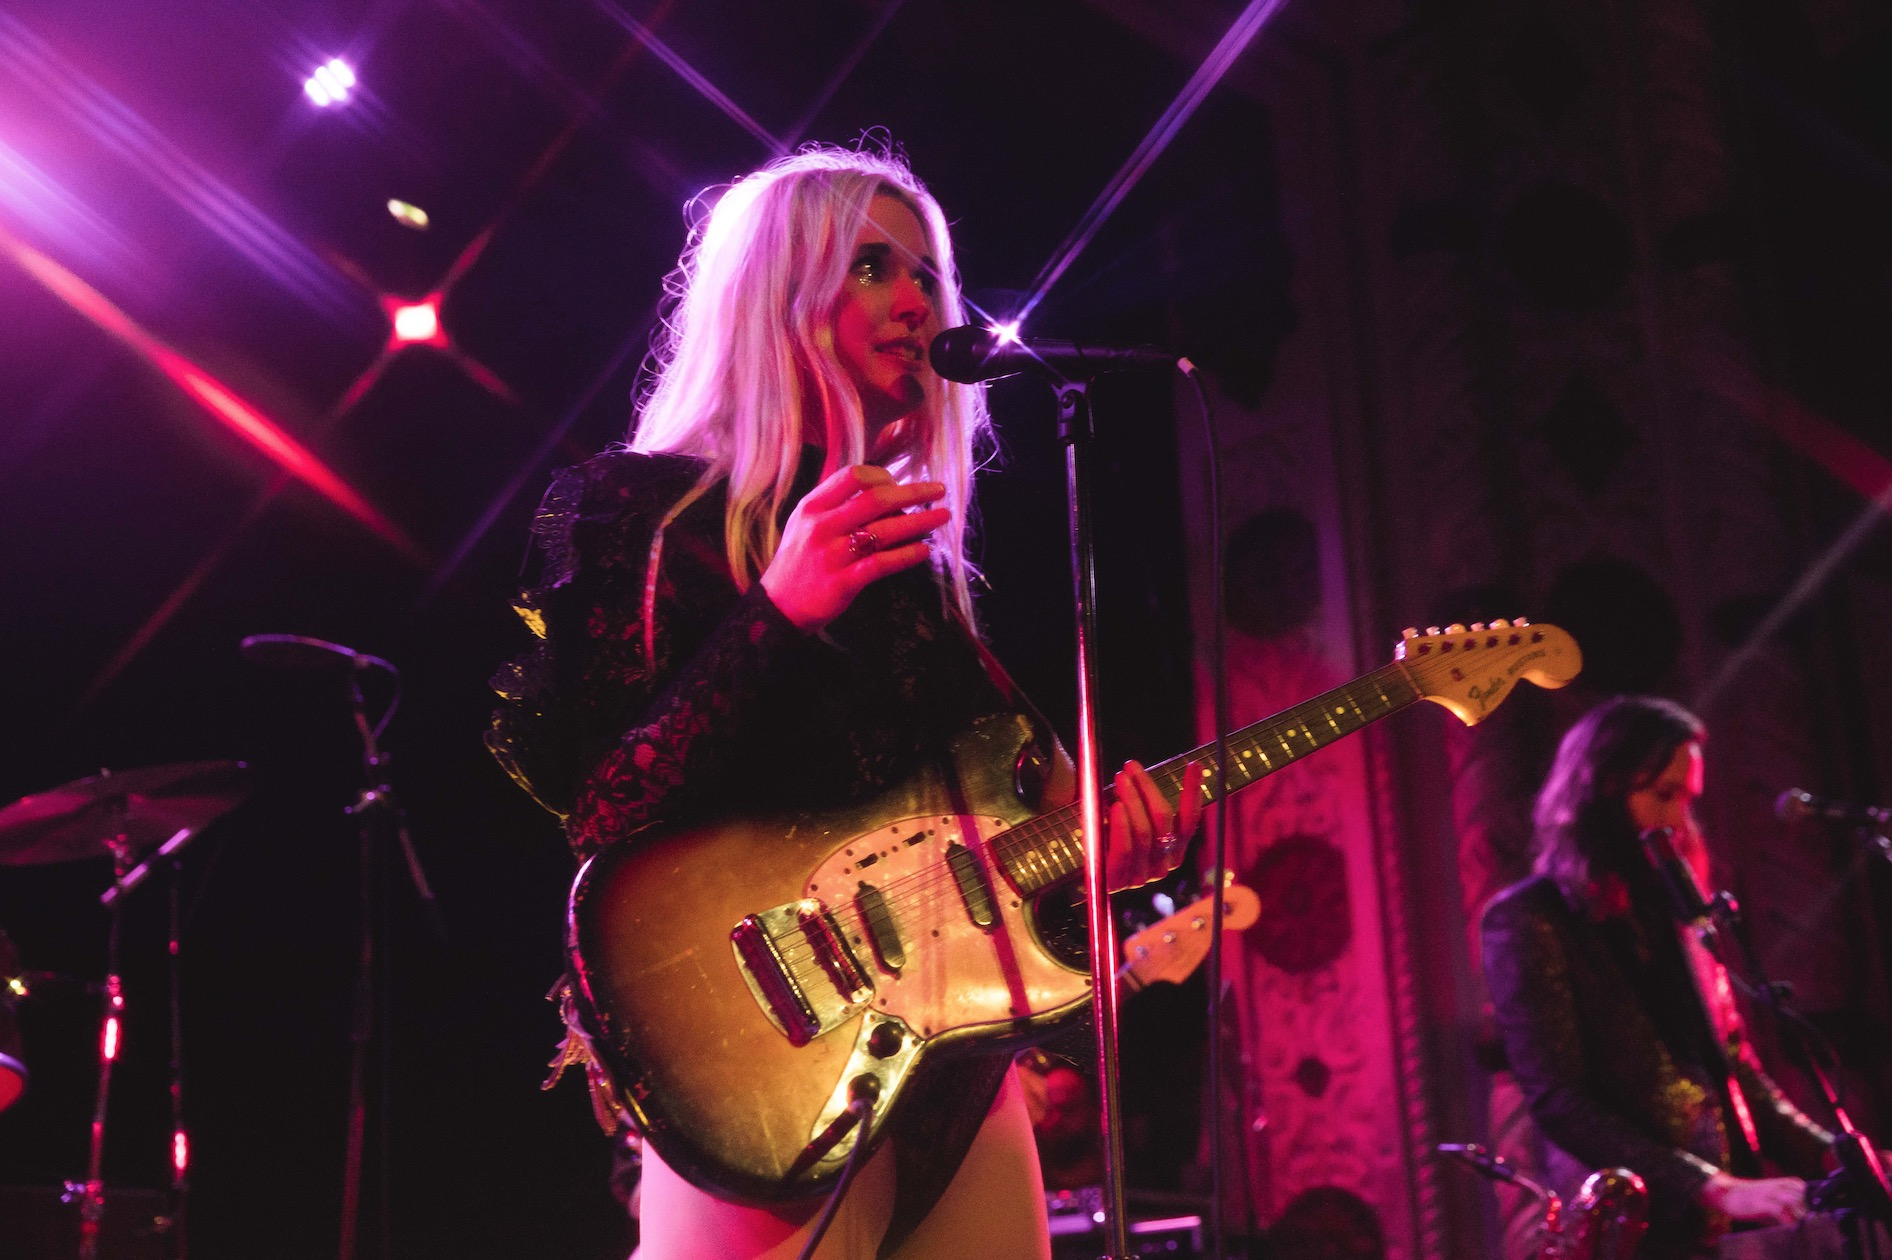 LIVE REVIEW: Wild Belle gives awaiting fans new music